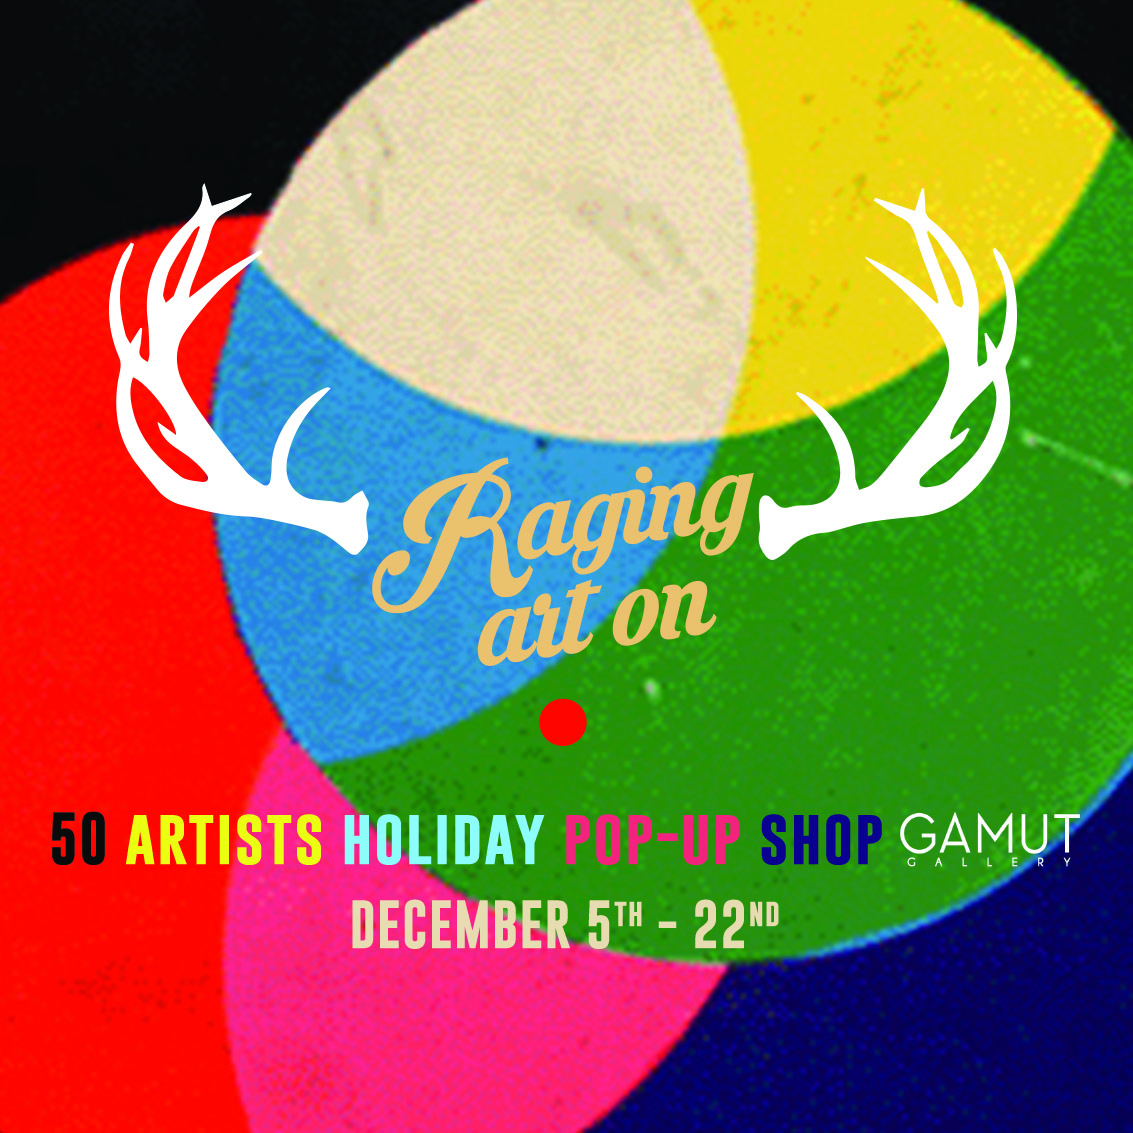 Reminder to pop on over to the Raging Art On that is still raging.  Thursday - Saturday December 13th -15th // 1-8PM Thursday - Saturday December 20th -22nd // 1-9PM